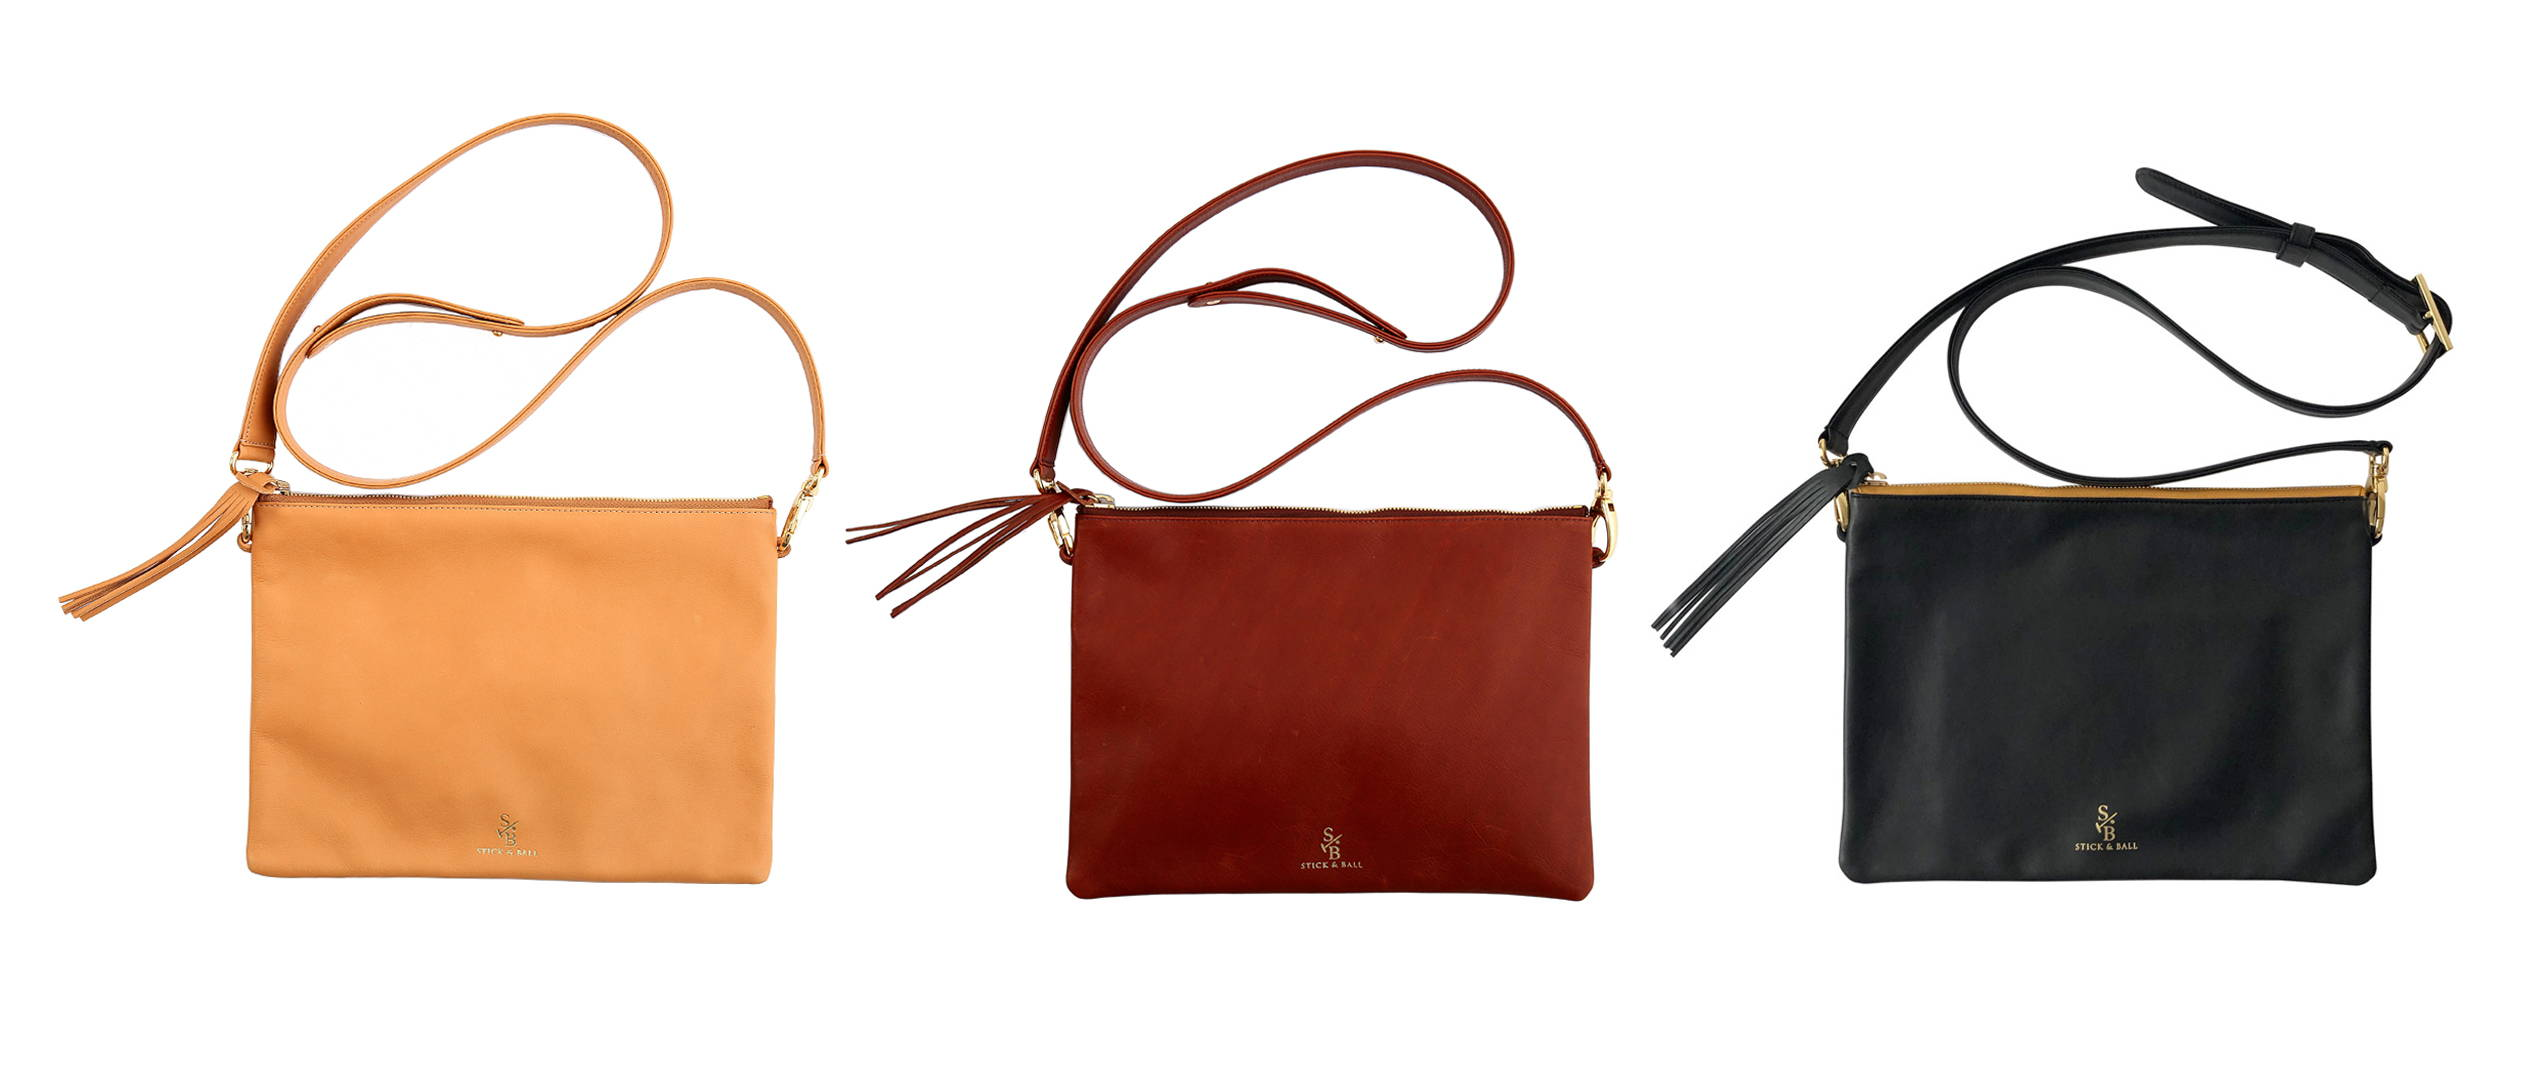 Display of vegetable-tanned Italian leather Indio crossbody bags/oversized clutch in palomino tan, brown & black - Stick & Ball